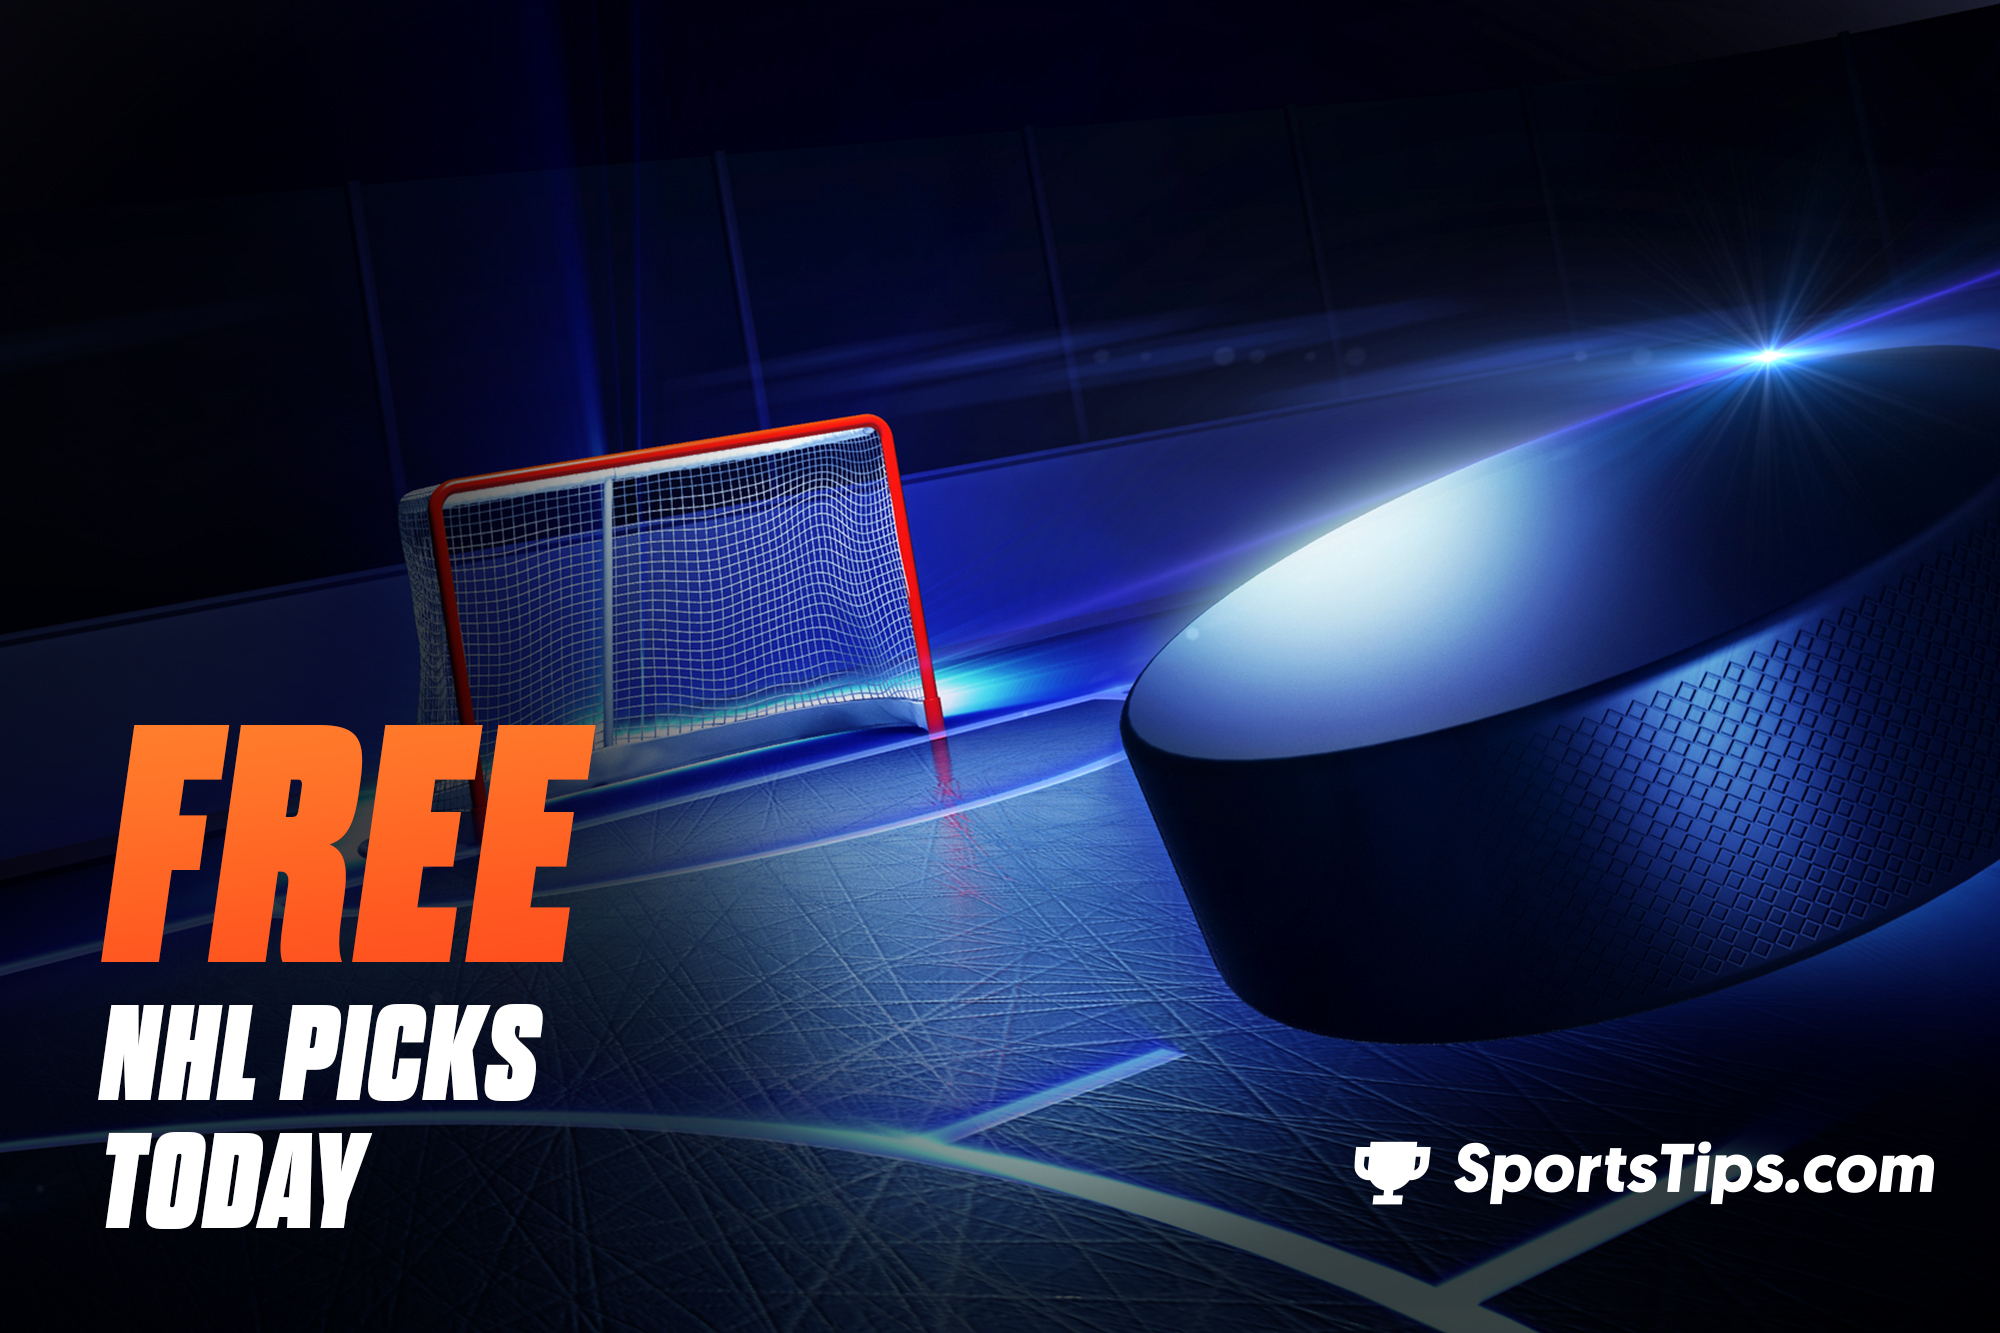 Free NHL Picks Today for Friday, January 29th, 2021